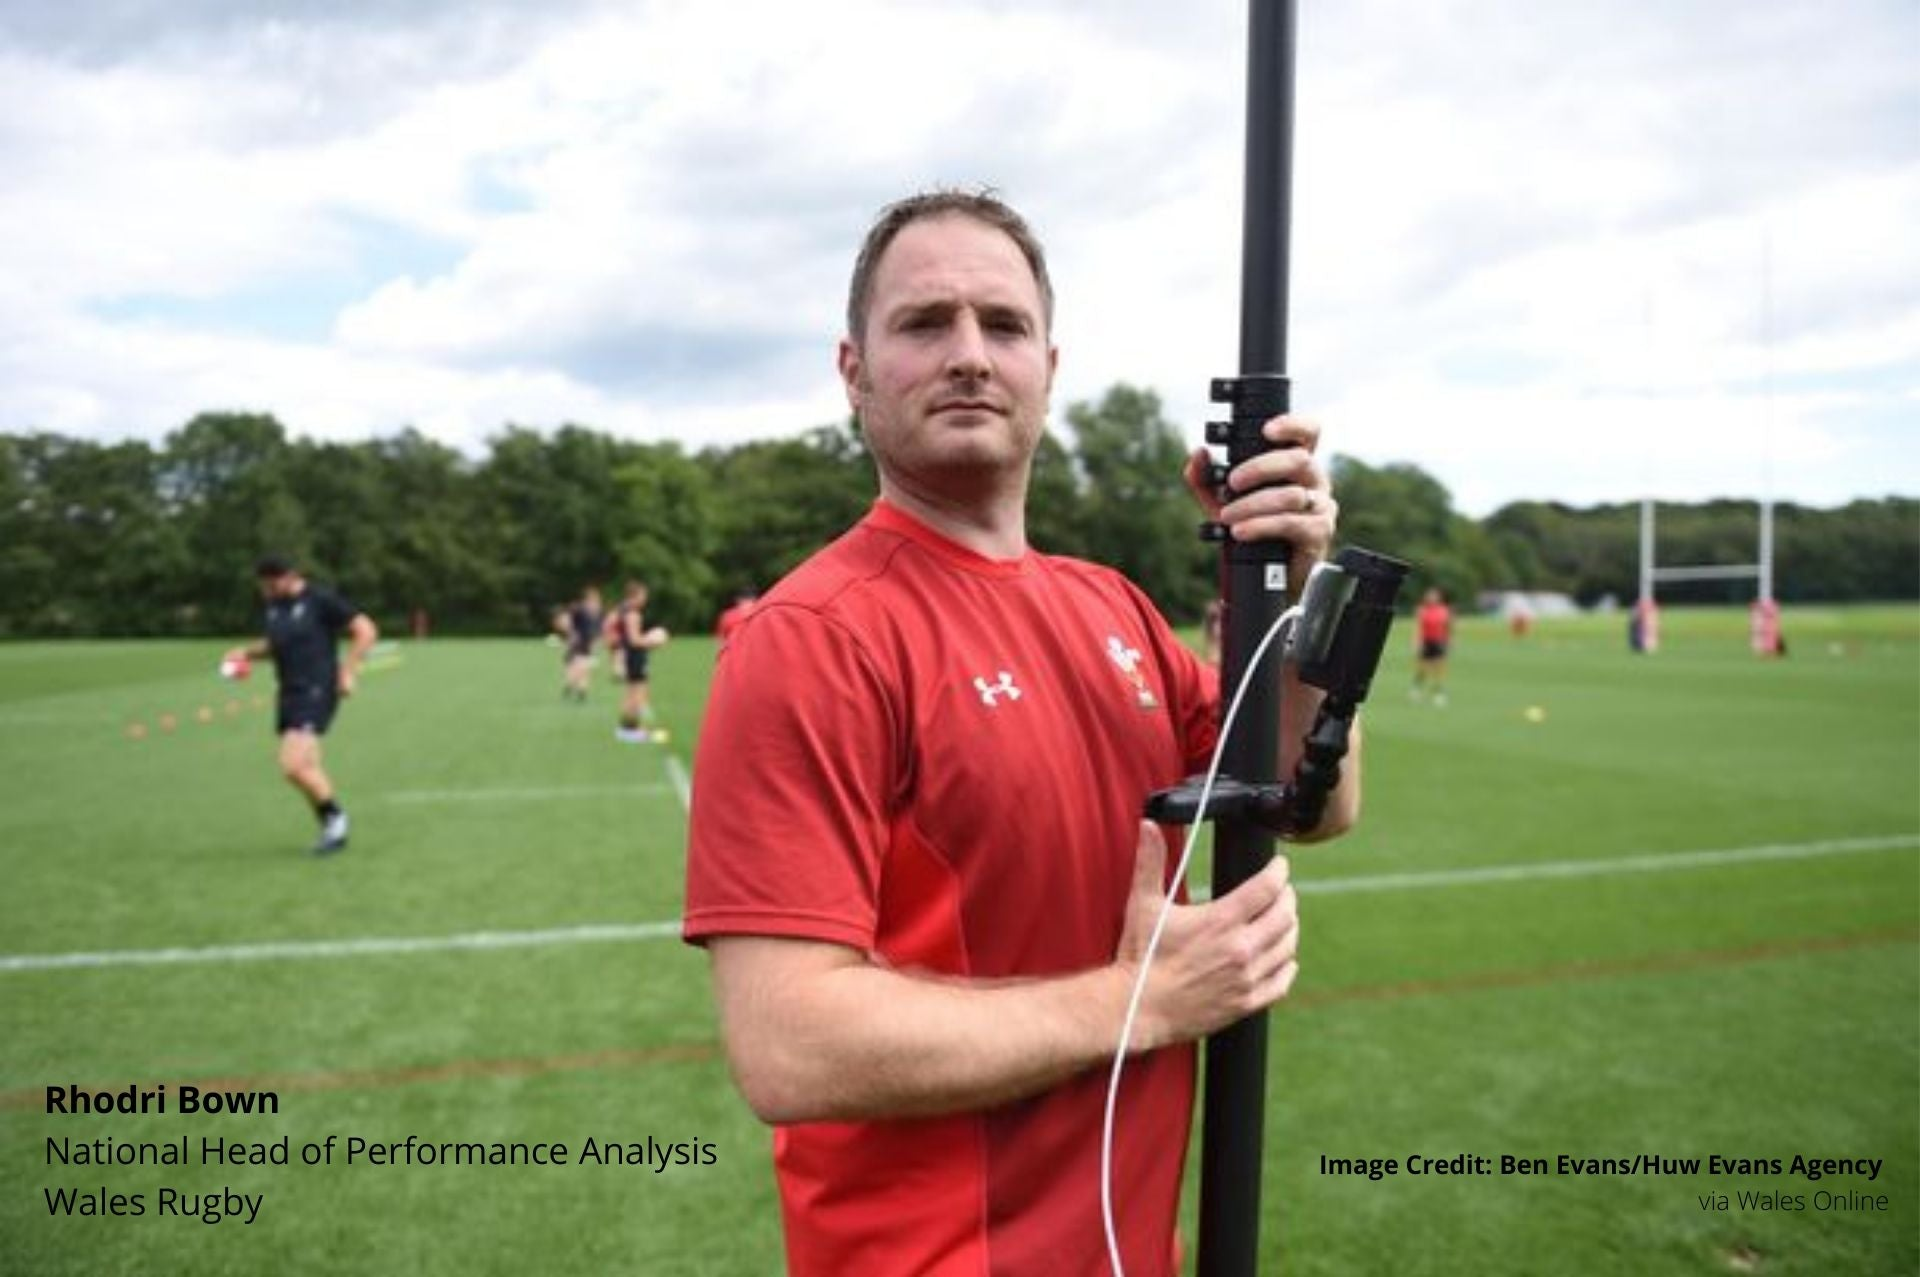 WRU Wales Rugby - Sports Video Mast Tools for Performance Analysis